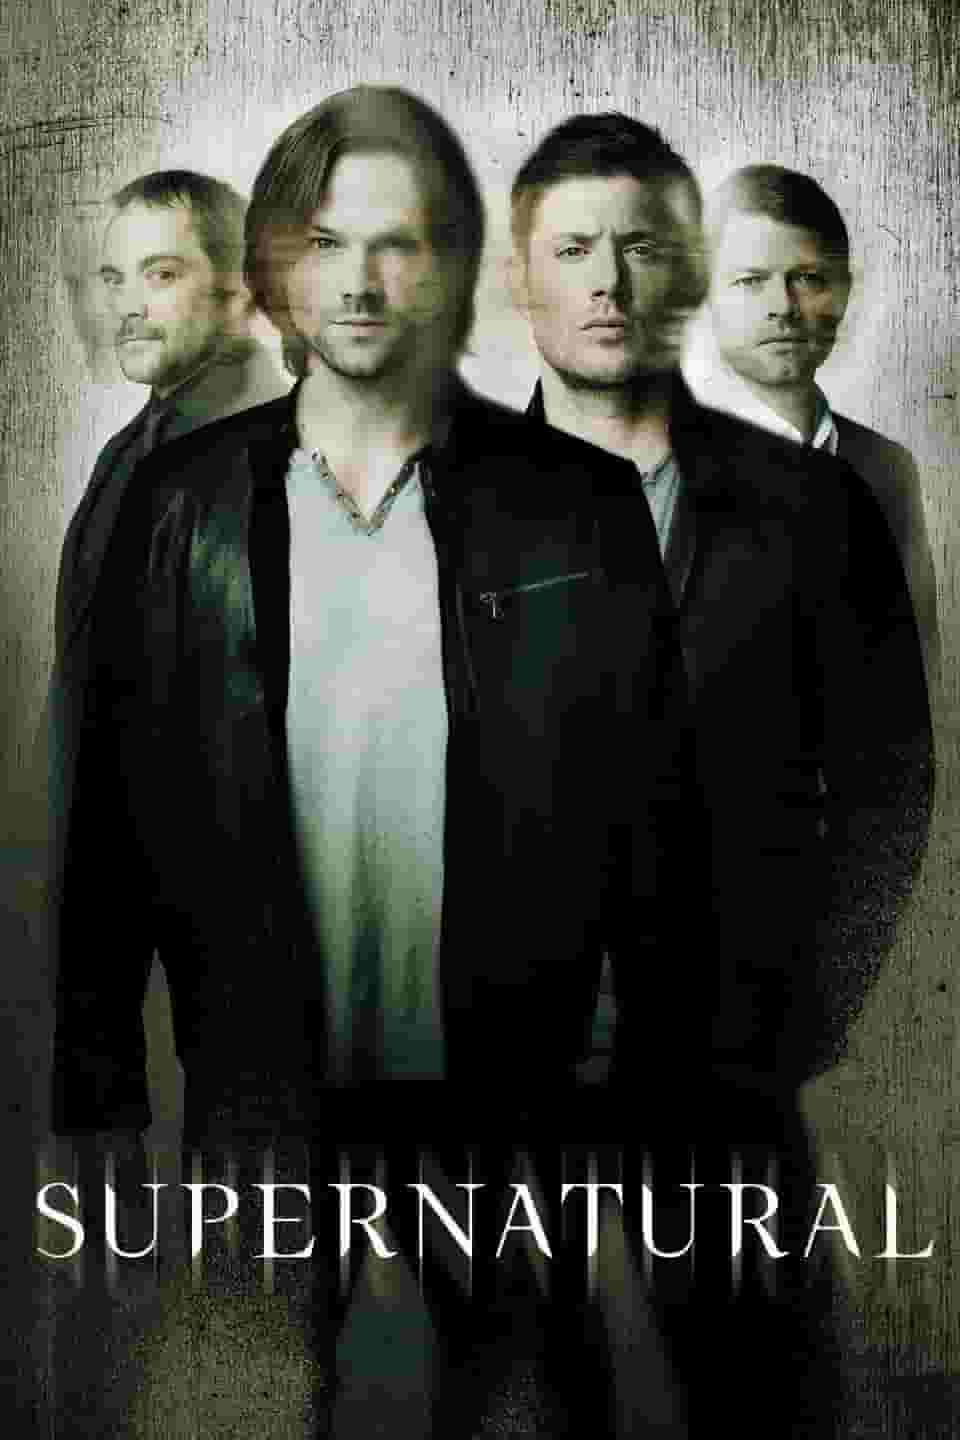 Assistir Supernatural Dublado 13ª Temporada Episodio 14 Online